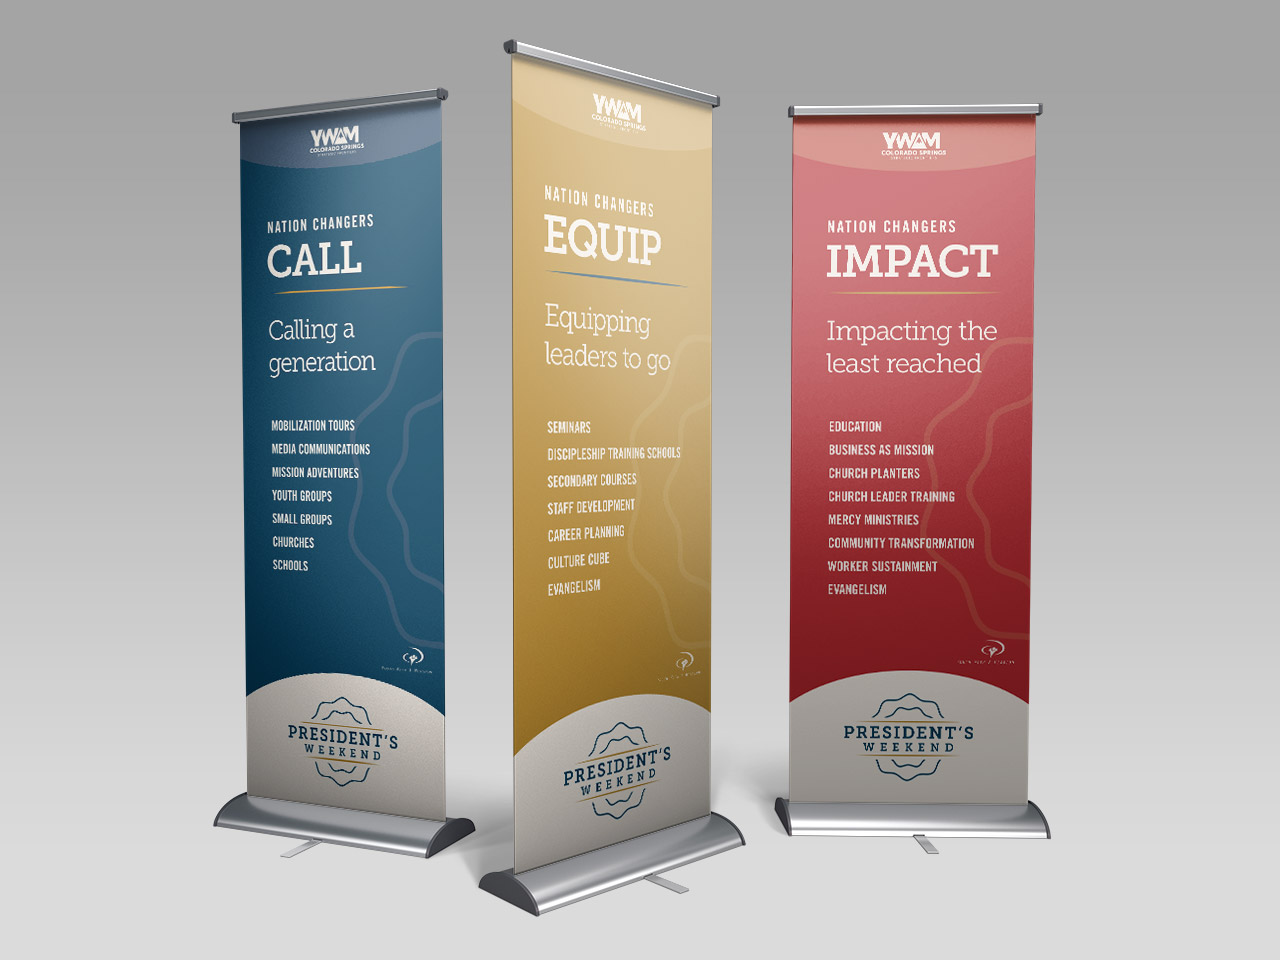 Fundraising event materials YWAM Kettle Fire Creative nonprofit banner design fundraising event Fundraising Event MaterialsPresident's Weekend ywamsf pw 2017 banners